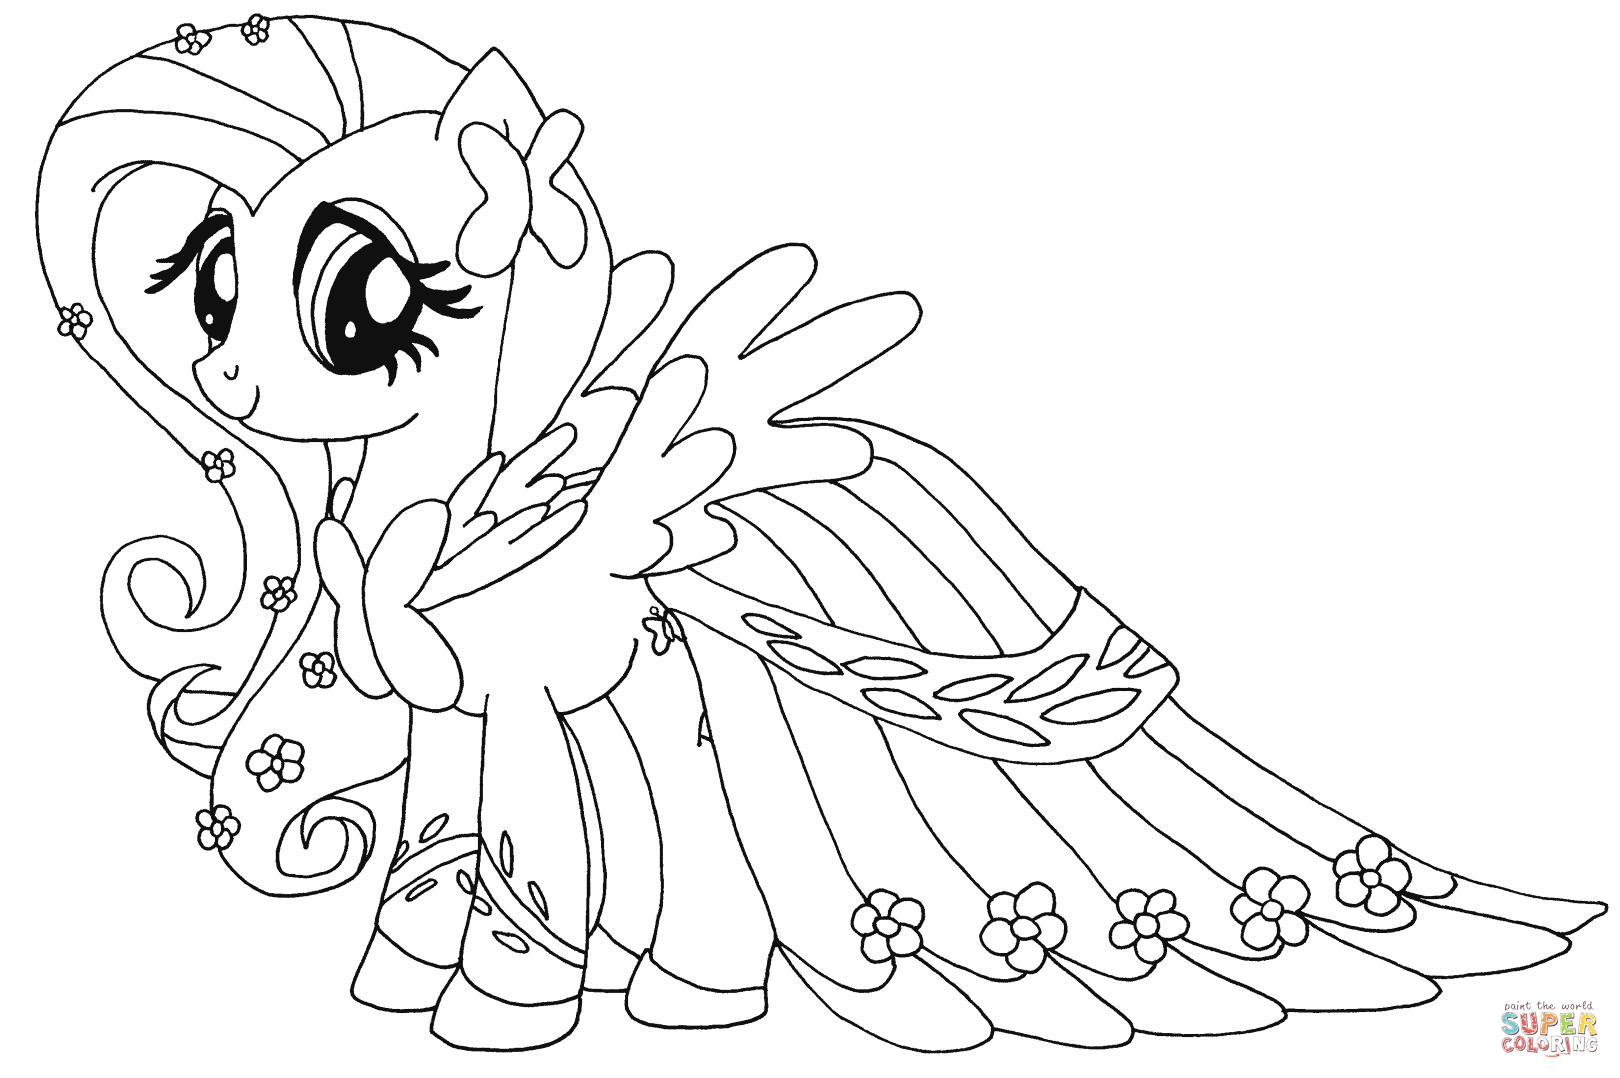 1620x1078 Fluttershy From My Little Pony Coloring Page